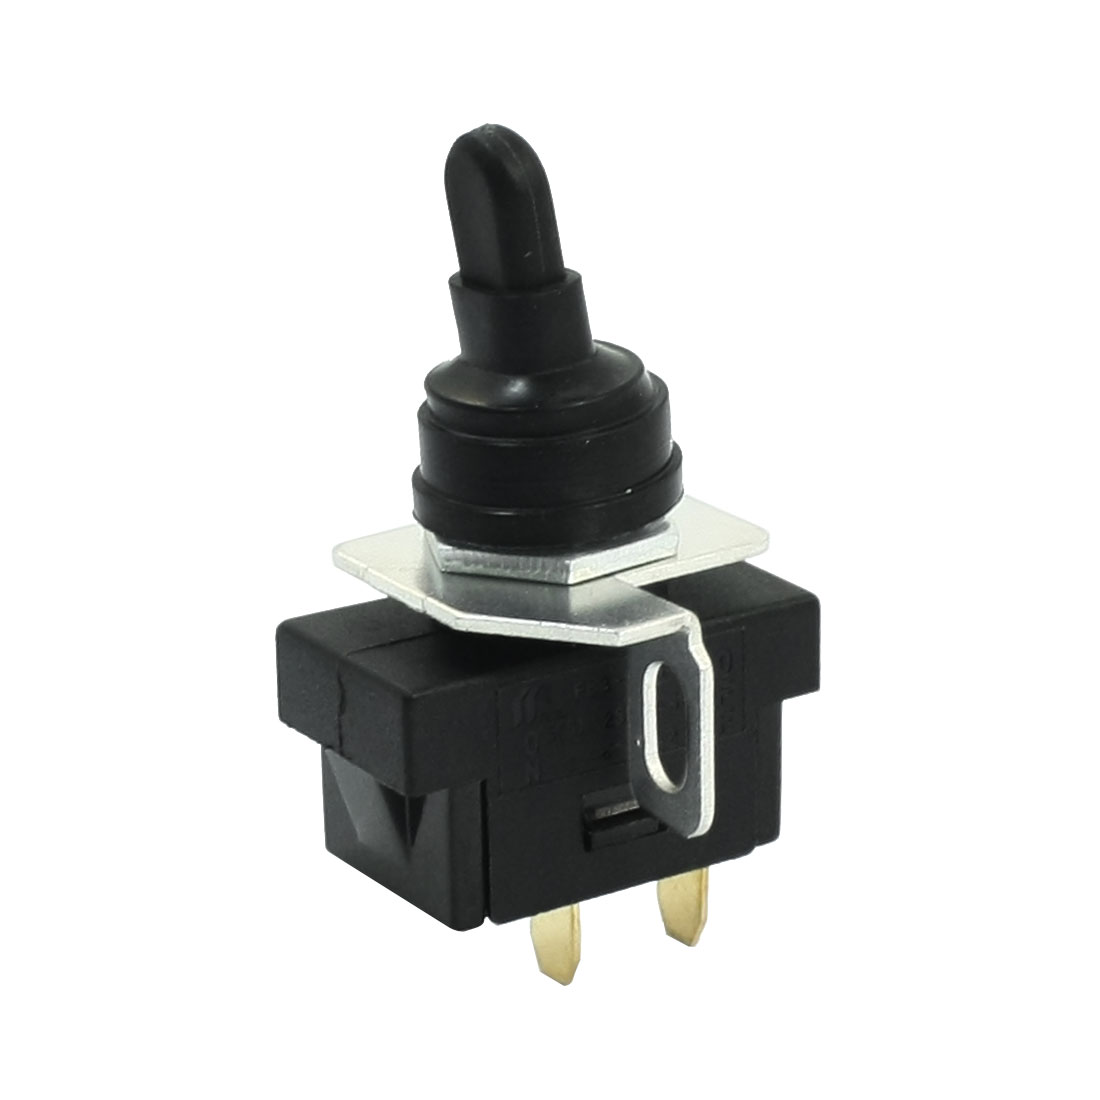 SPST 2 Terminals Locking Toggle Switch AC 250V 5A w Waterproof Cover